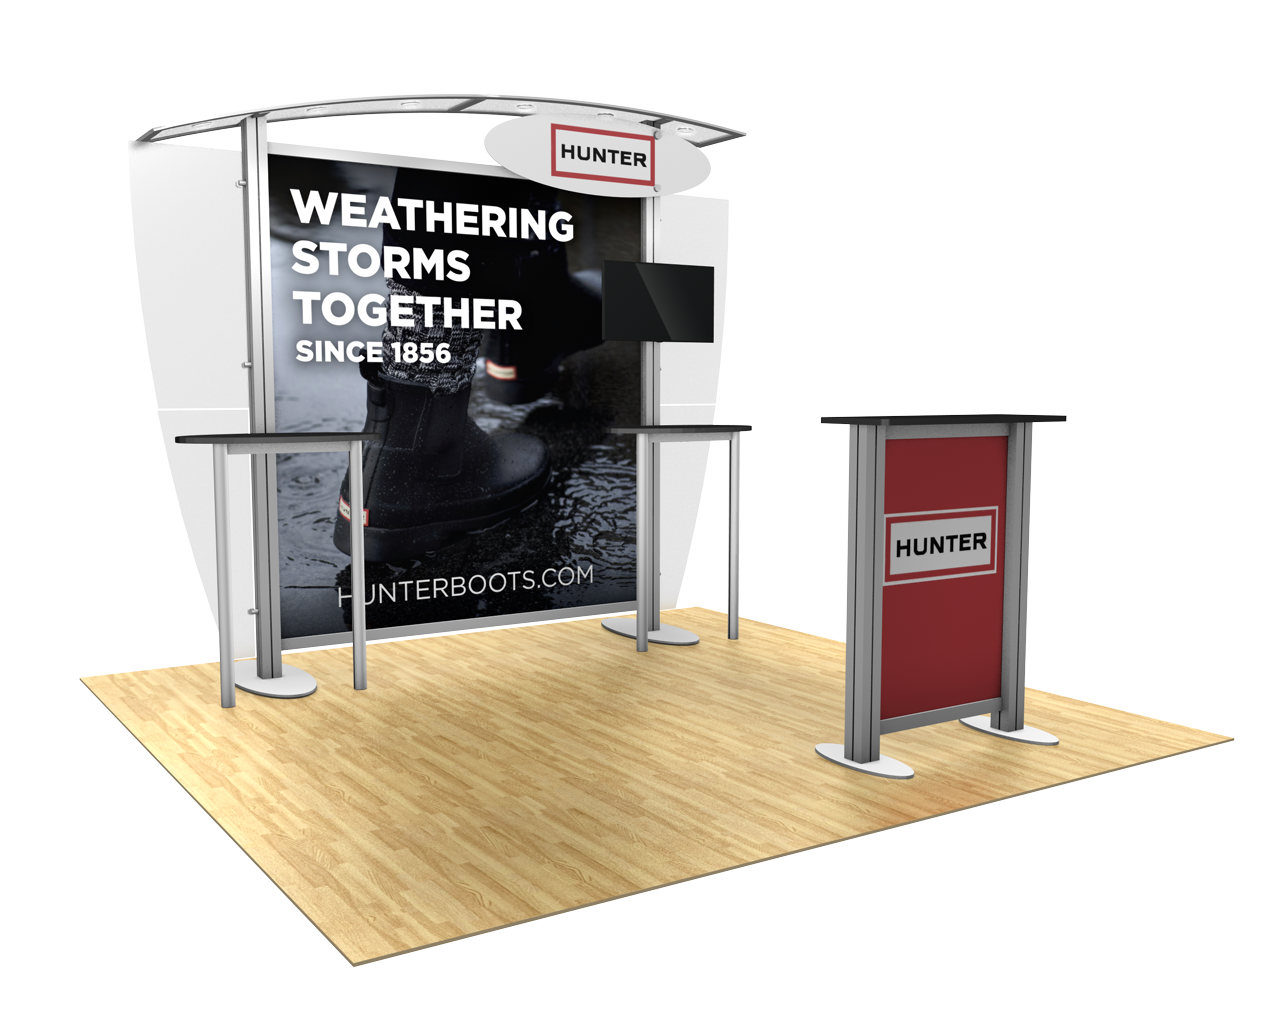 XVline Modular 10x10 Trade Show Display Kit - 10.04